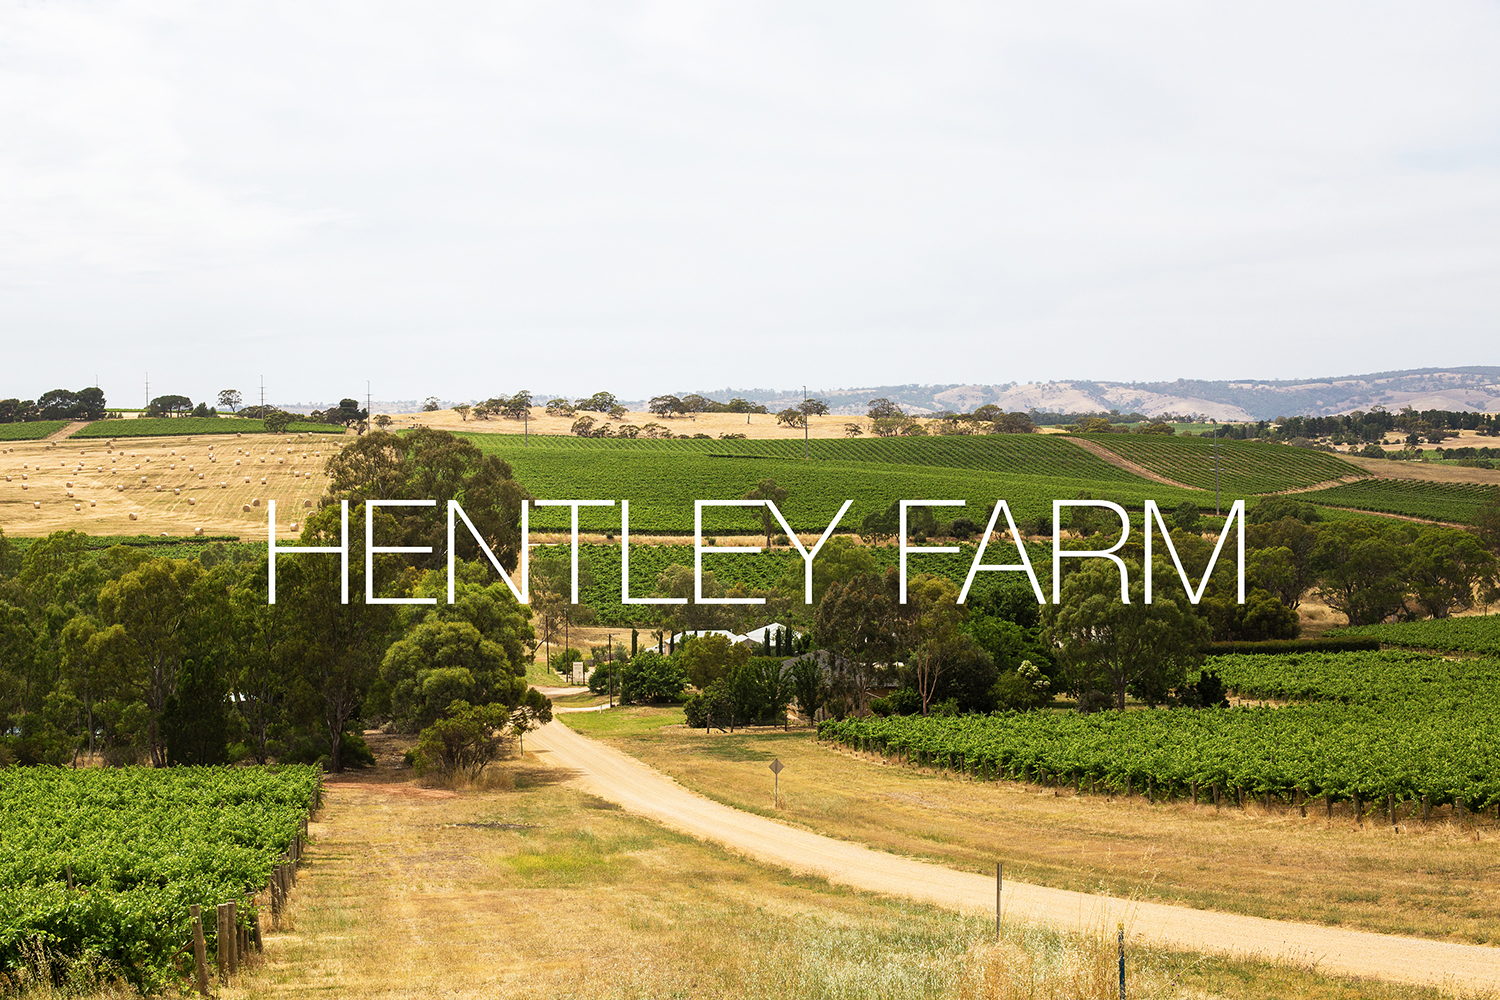 Hentley Farm